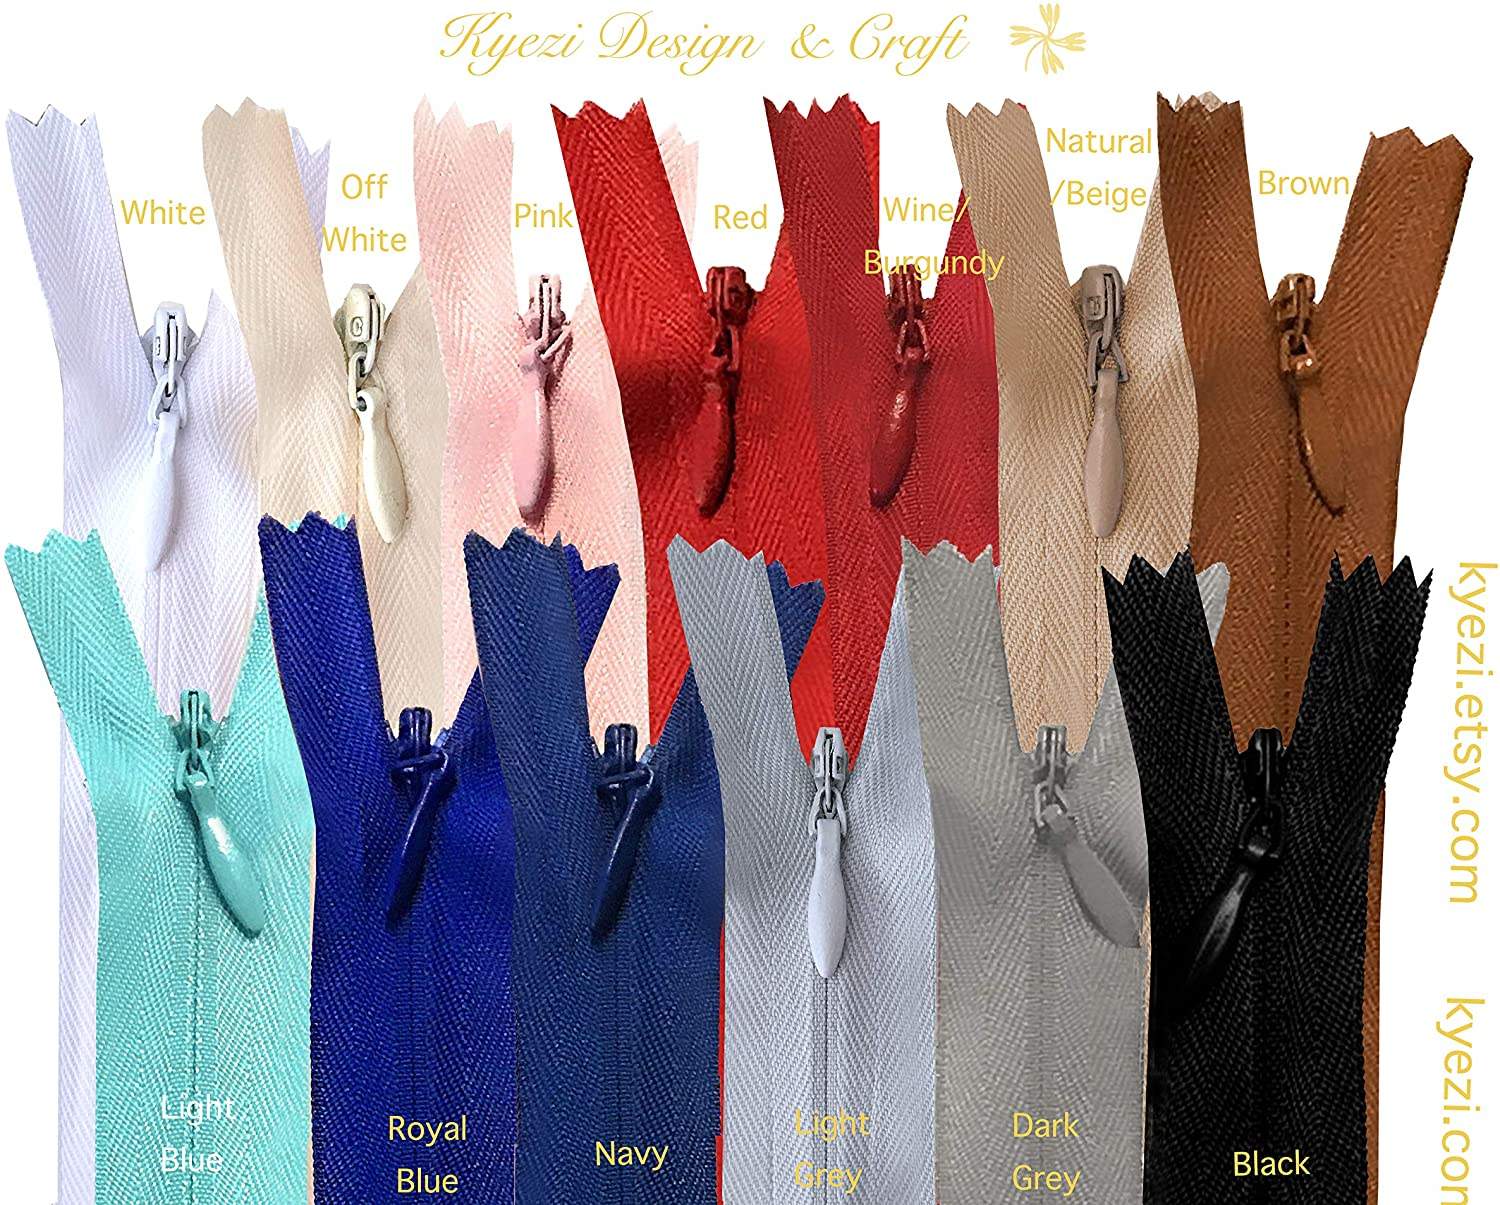 9-22 Inch Nylon Invisible Zippers for Pillow, Dresses, Skirts, Pants, Tailor, Sewer, Sewing Craft (Mixed Colors, 22 inch - 15pcs)